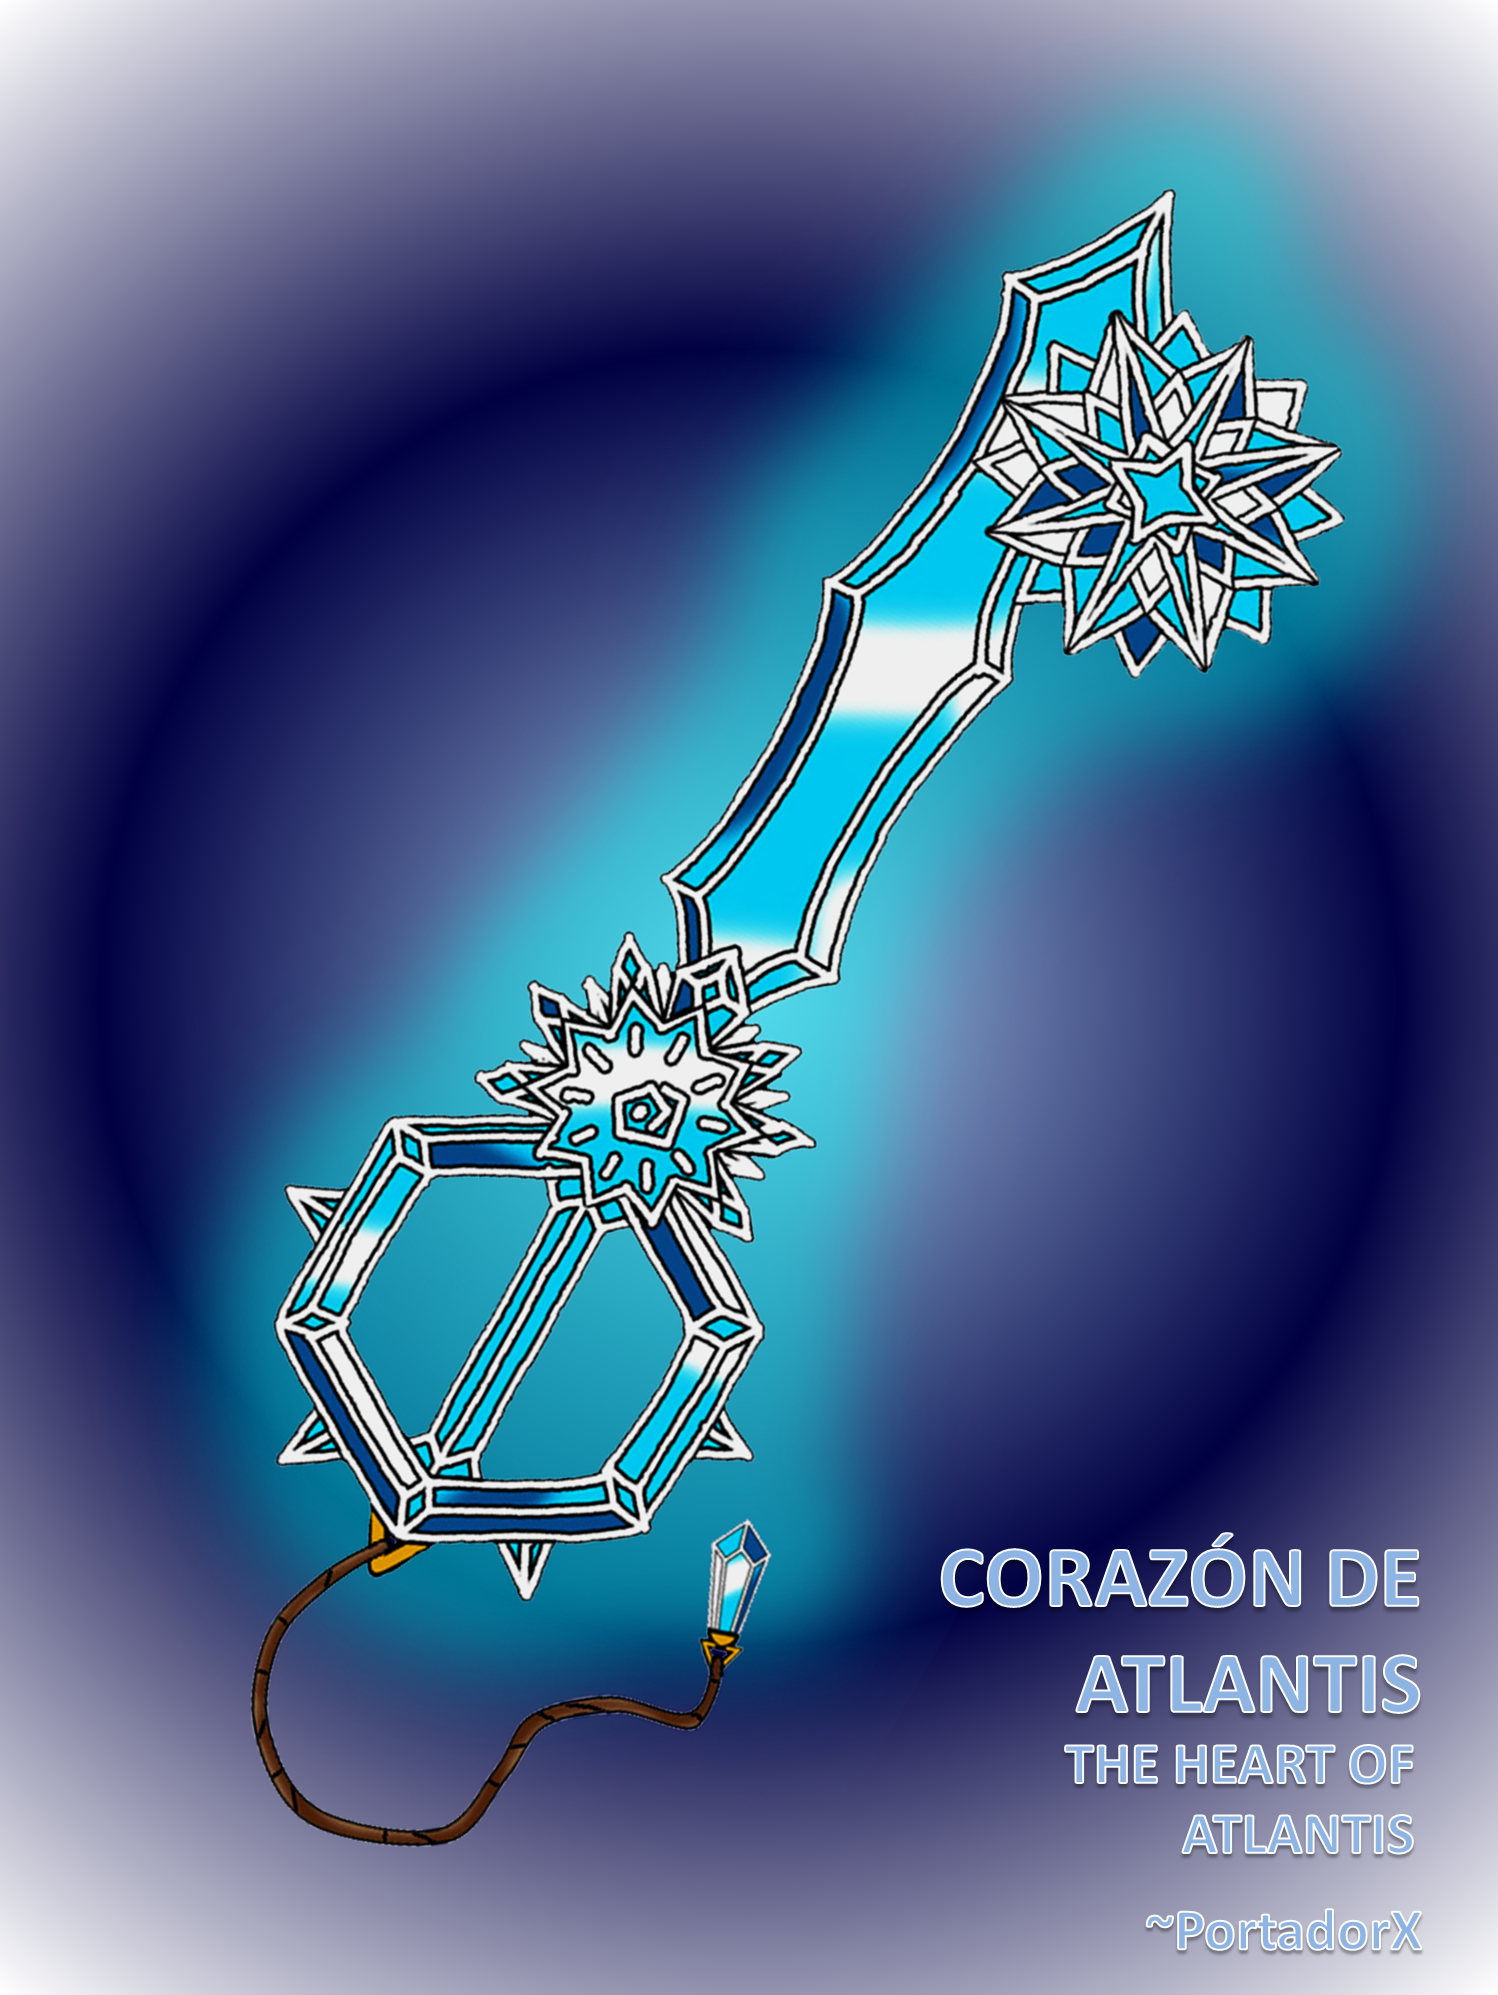 Corazon de Atlantis -The Heart of Atlantis- by portadorX